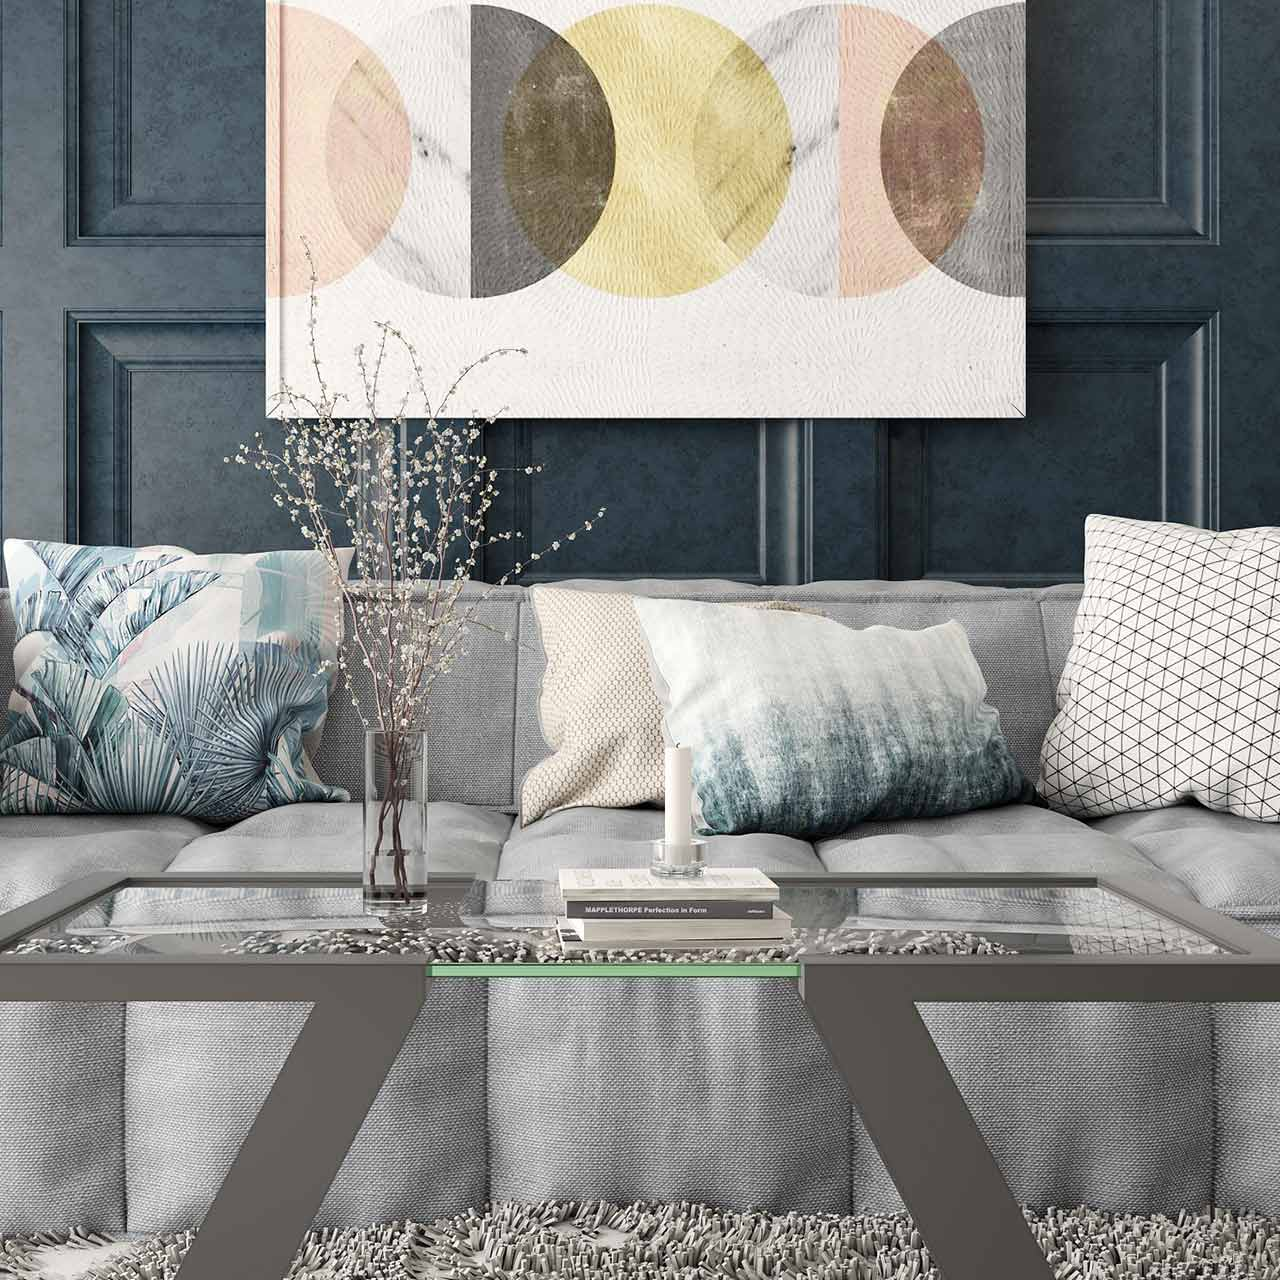 Living room interior design with a beautifully patterned pillows lend a beautiful flavour